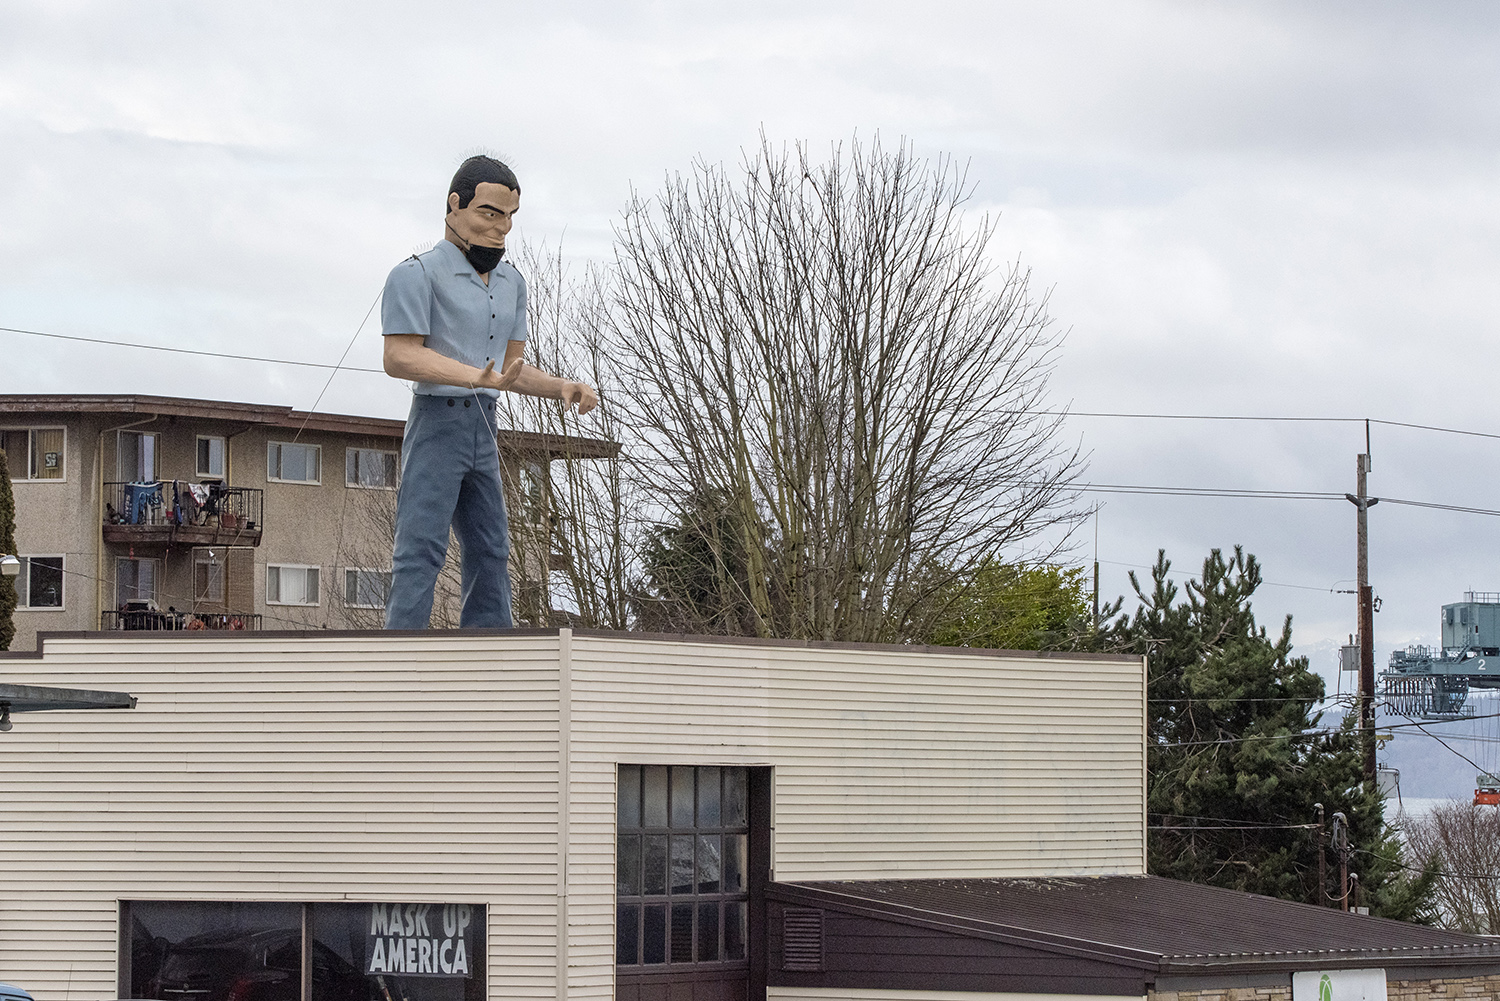 He's not alone. The Muffler Man has several other Washington brothers, and hundreds of other siblings standing roadside throughout America. (Rachael Jones / Seattle Refined)